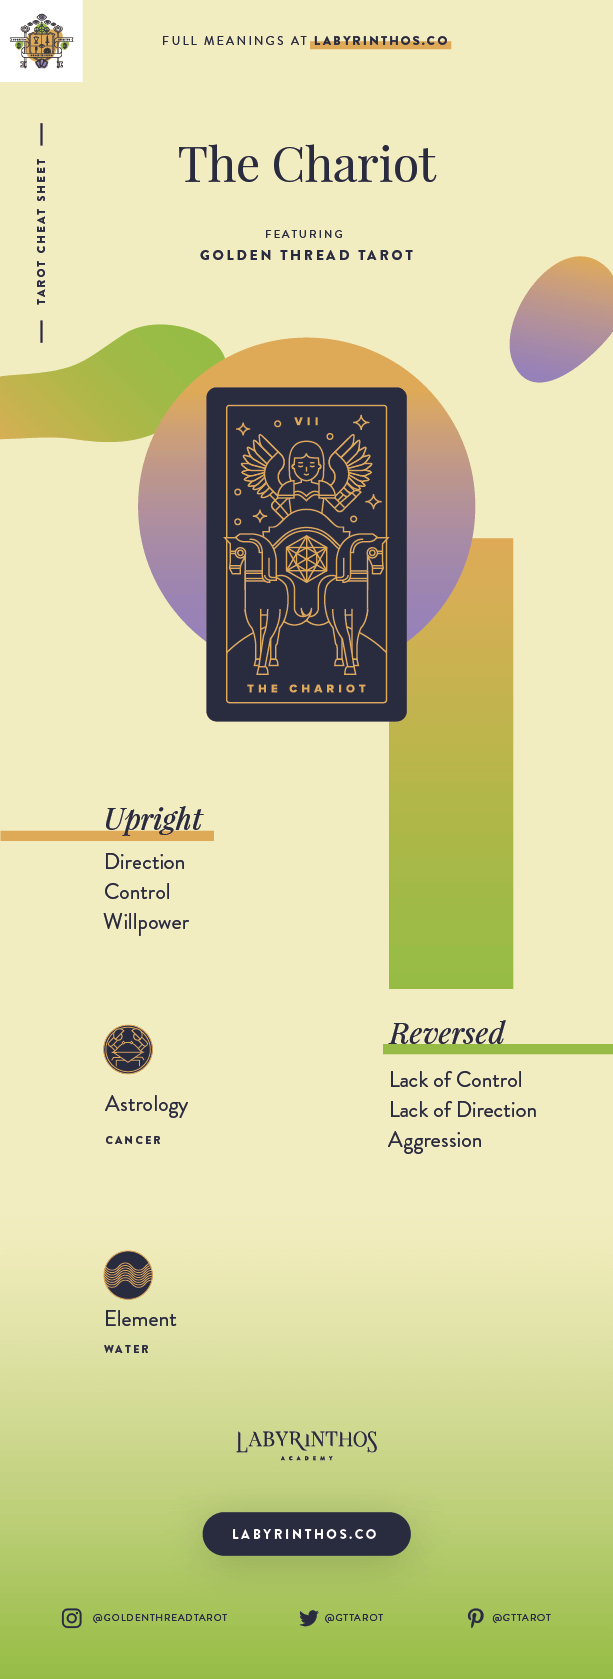 The Chariot Meaning - Tarot Card Meanings Cheat Sheet